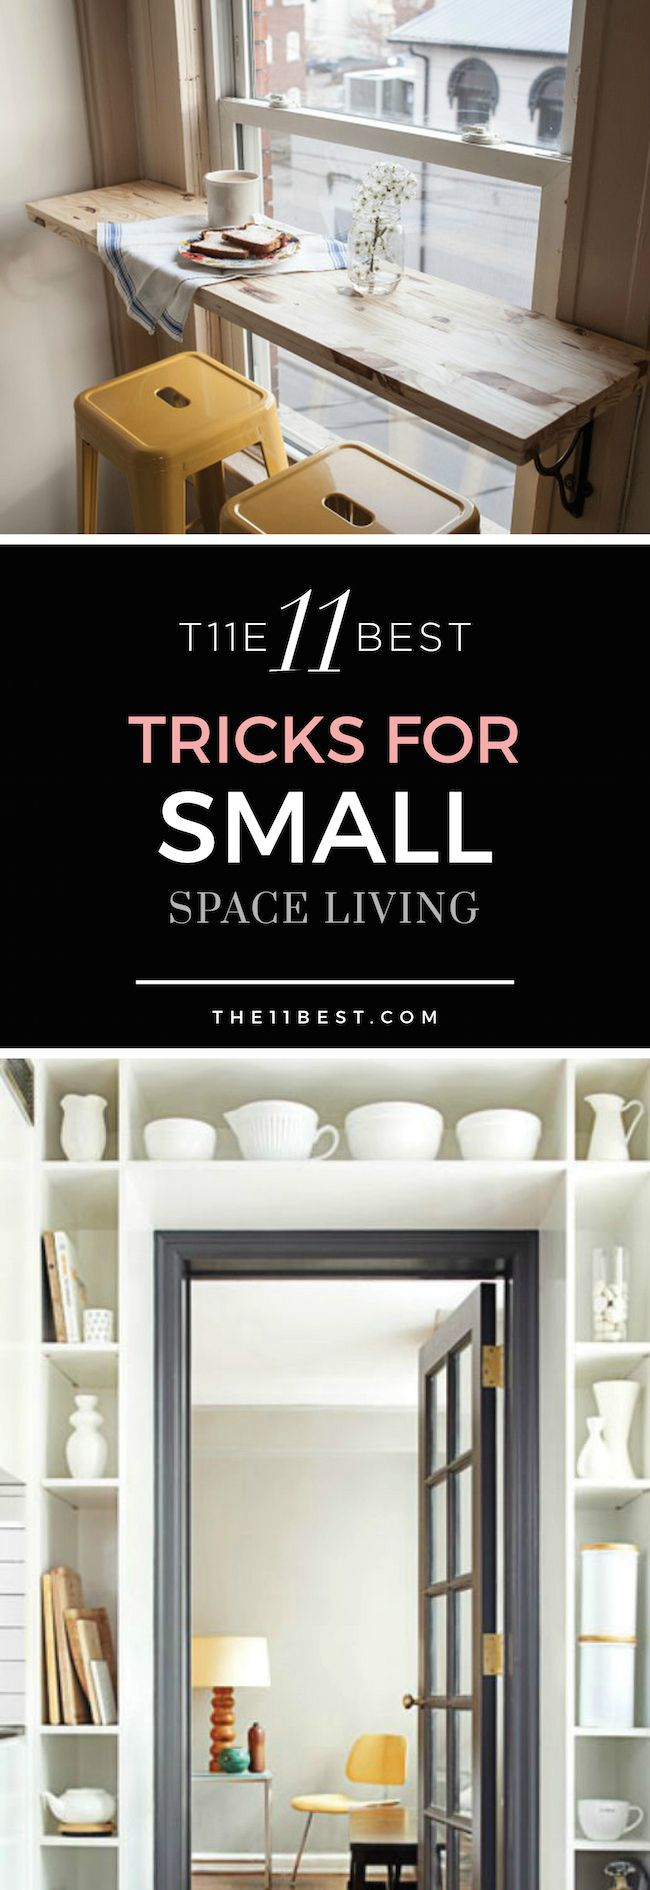 Amazing Ideas Tips And Tricks For Small Spaces In Your Home Breakfast Bar